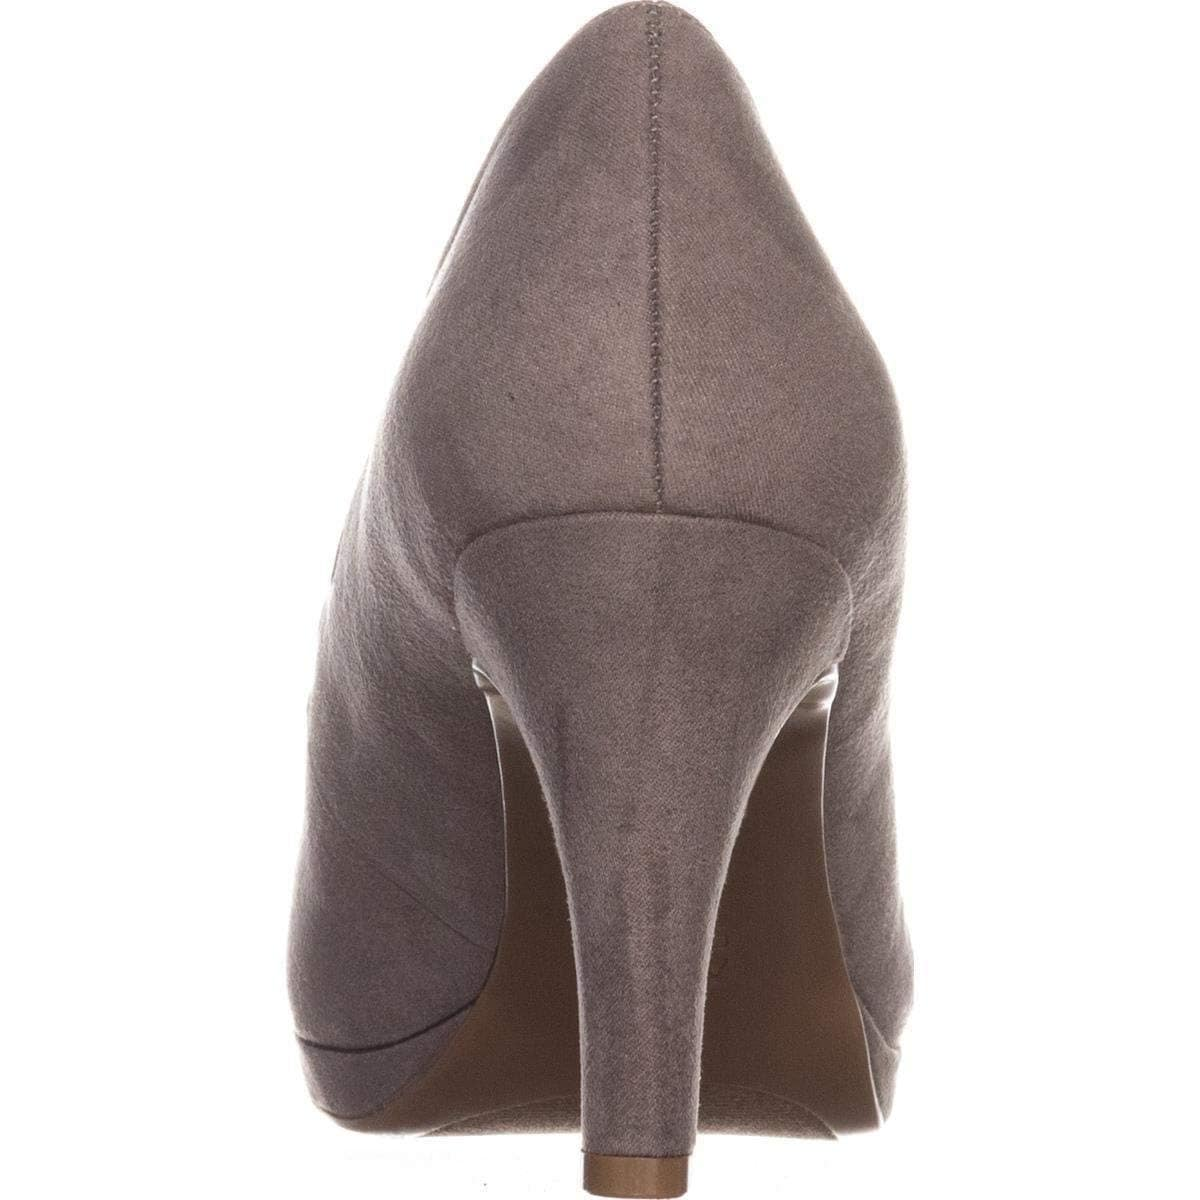 1836f8d0fe3f Shop Naturalizer Womens Prudence Fabric Closed Toe Mary Jane Pumps - Free  Shipping Today - Overstock - 24088527